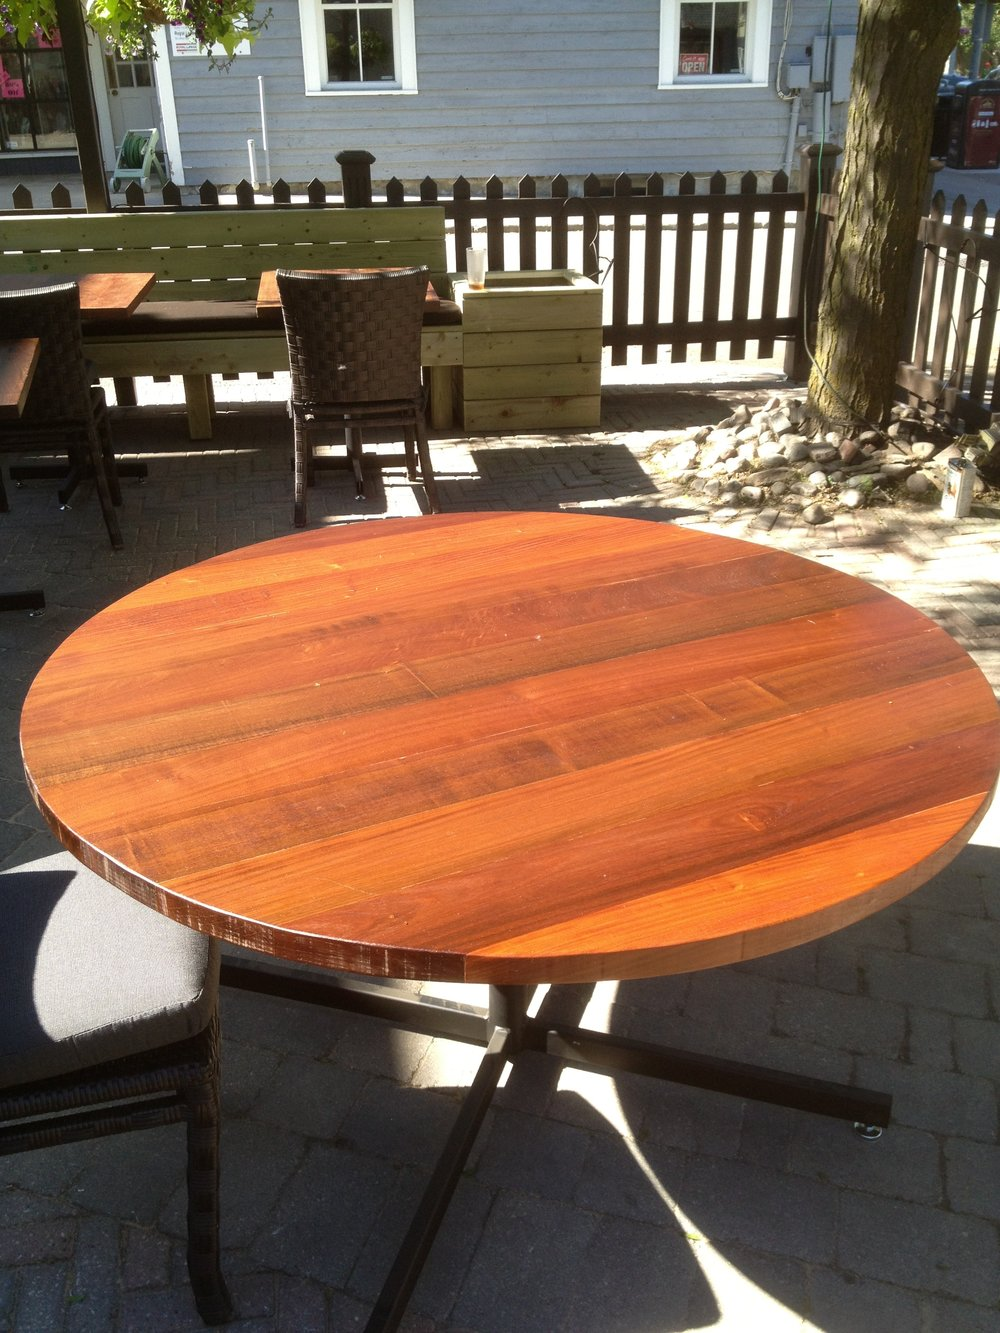 El Postino - Custom Ipe Patio Tables